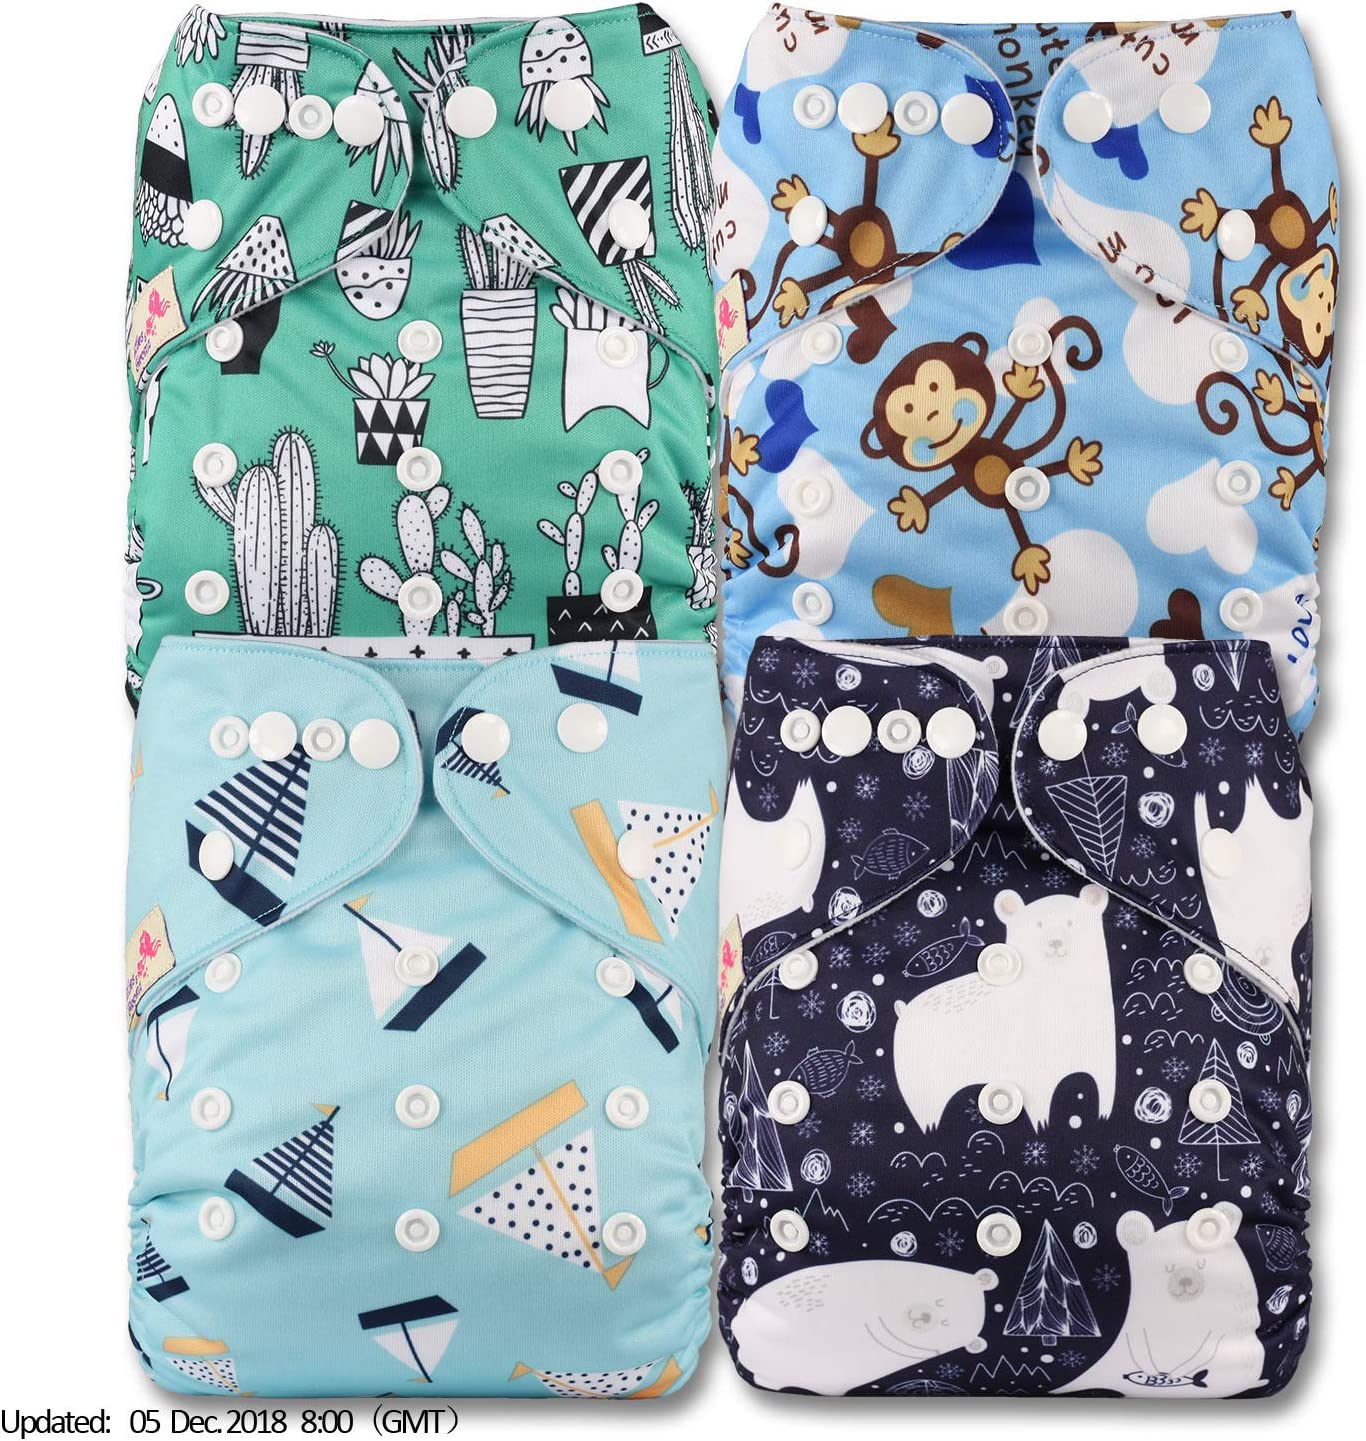 Littles /& Bloomz Fastener: Hook-Loop Set of 4 with 4 Bamboo Charcoal Inserts Patterns 404 Reusable Pocket Cloth Nappy